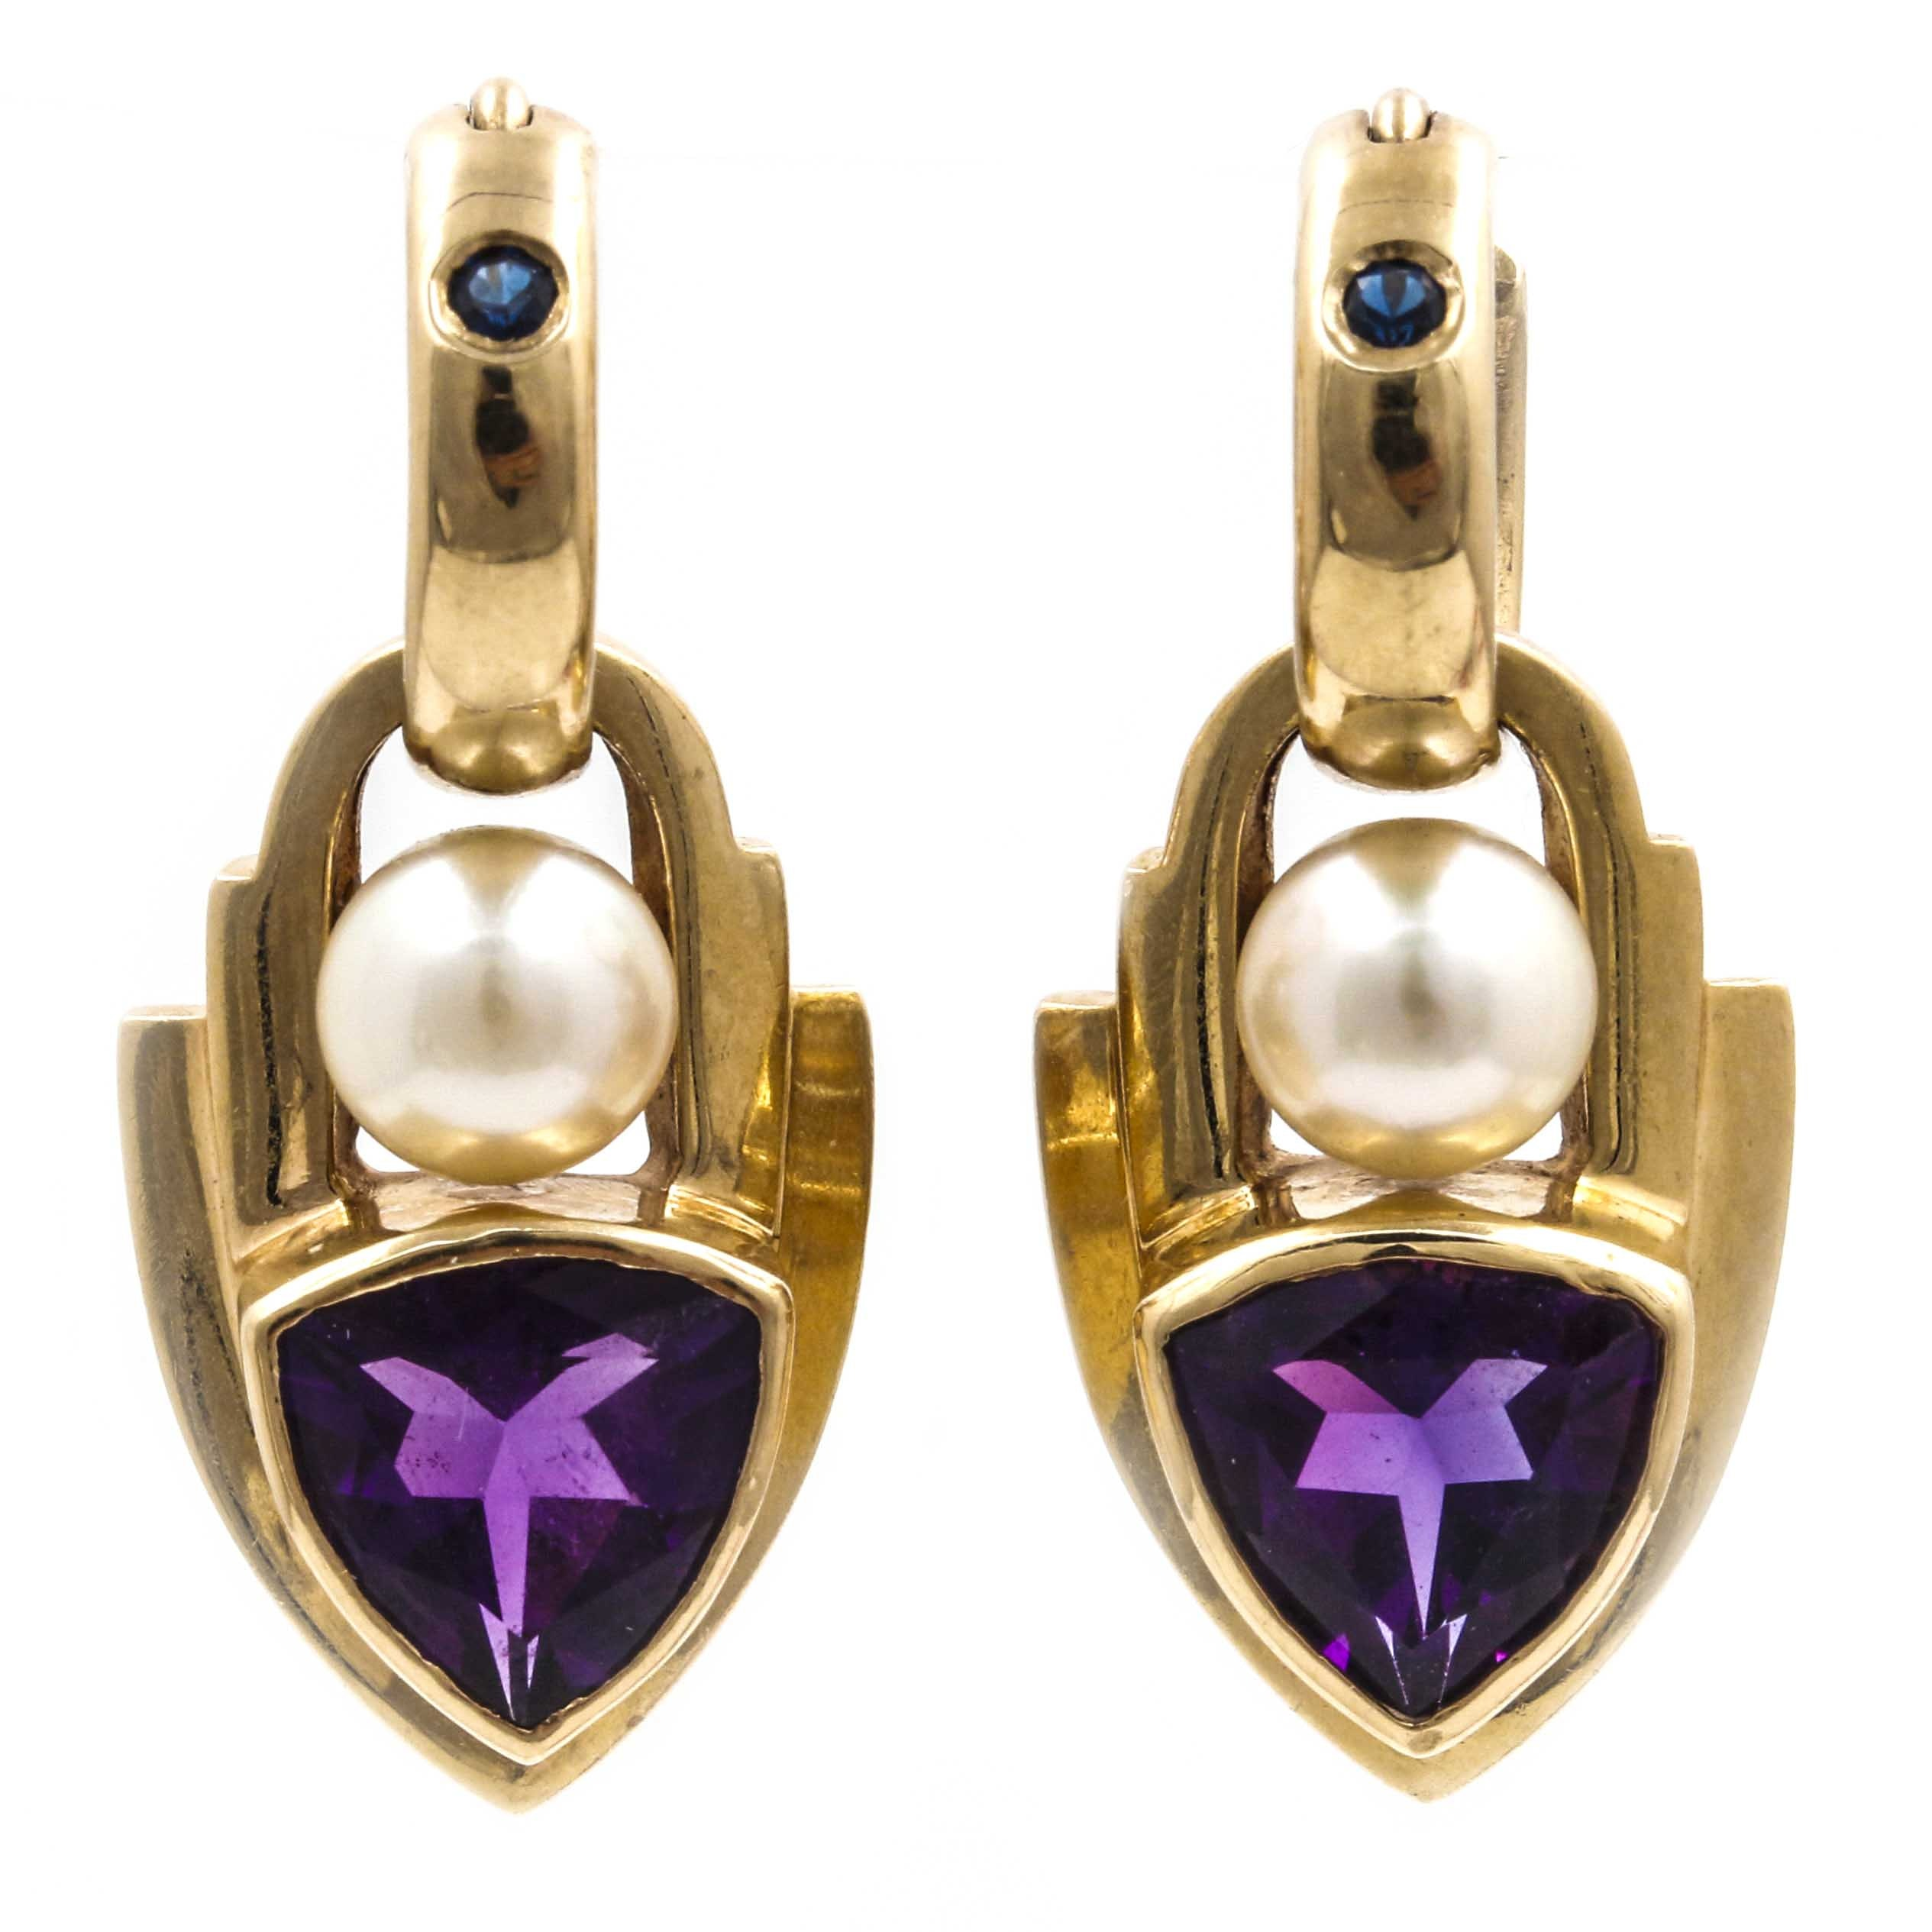 14K Yellow Gold Earrings With Amethyst, Cultured Pearl, and Sapphire